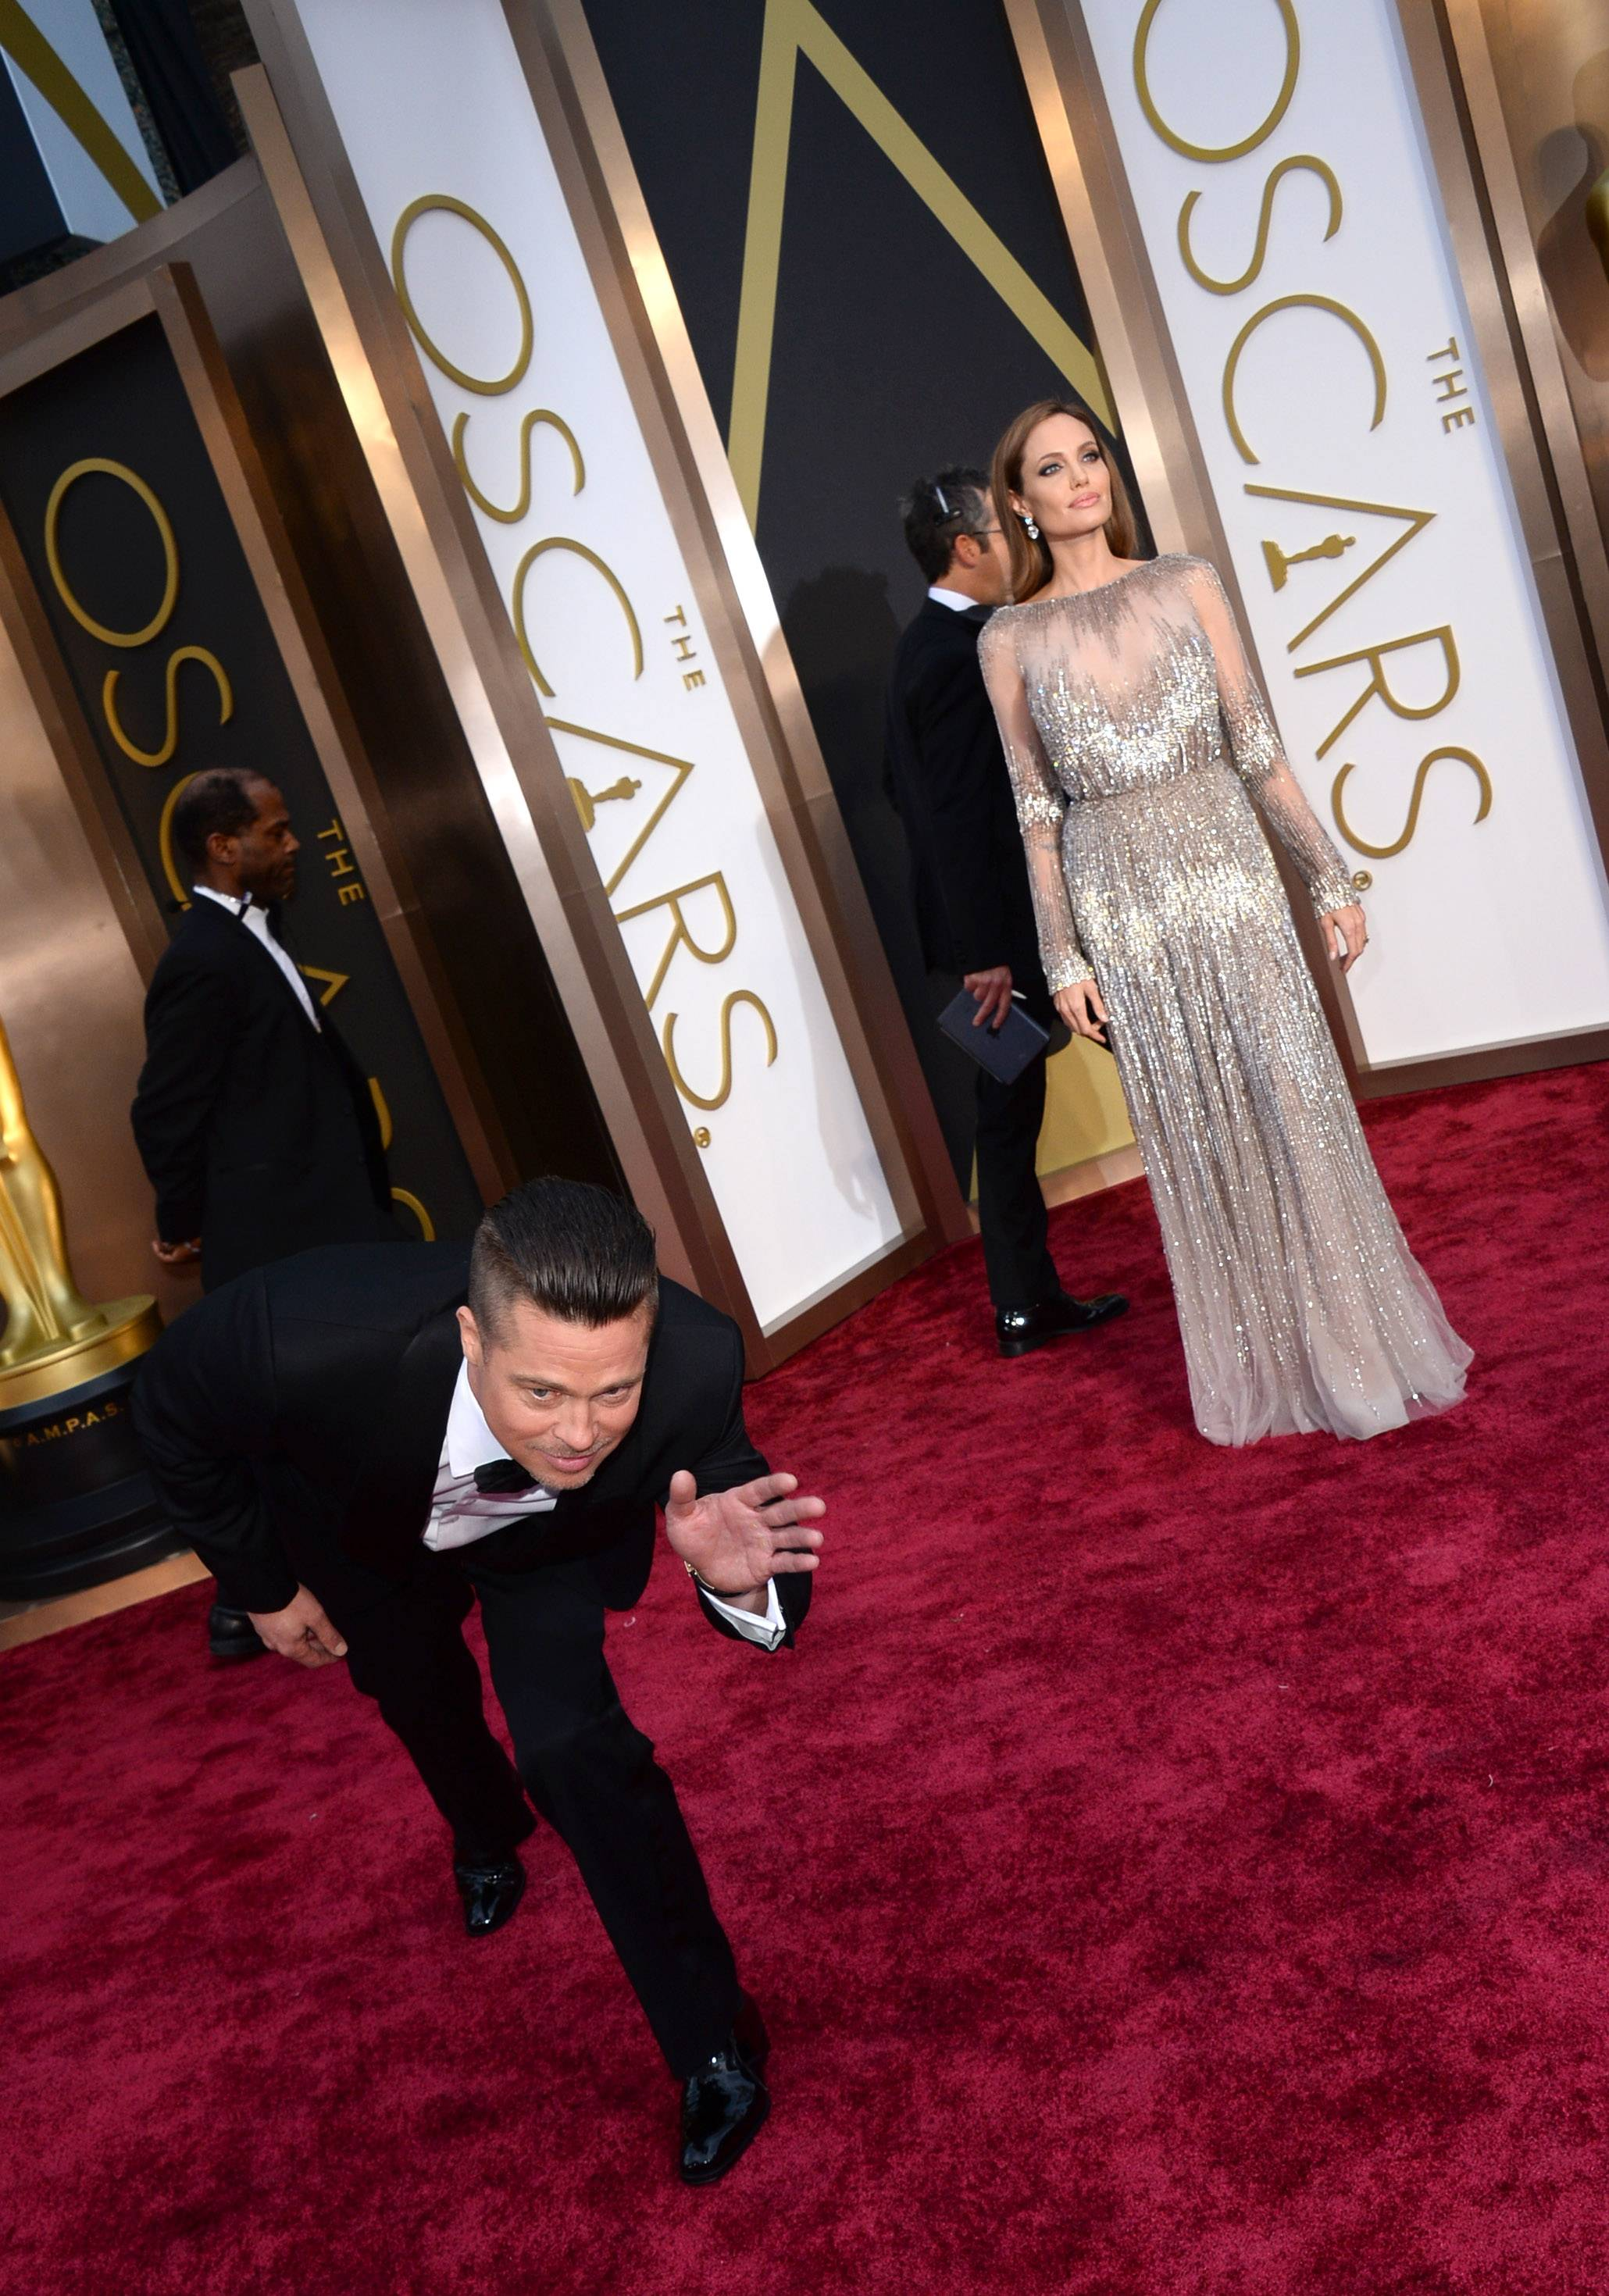 Brad Pitt shows a bit of his silly side while working the red carpet with his lady Angelina Jolie.